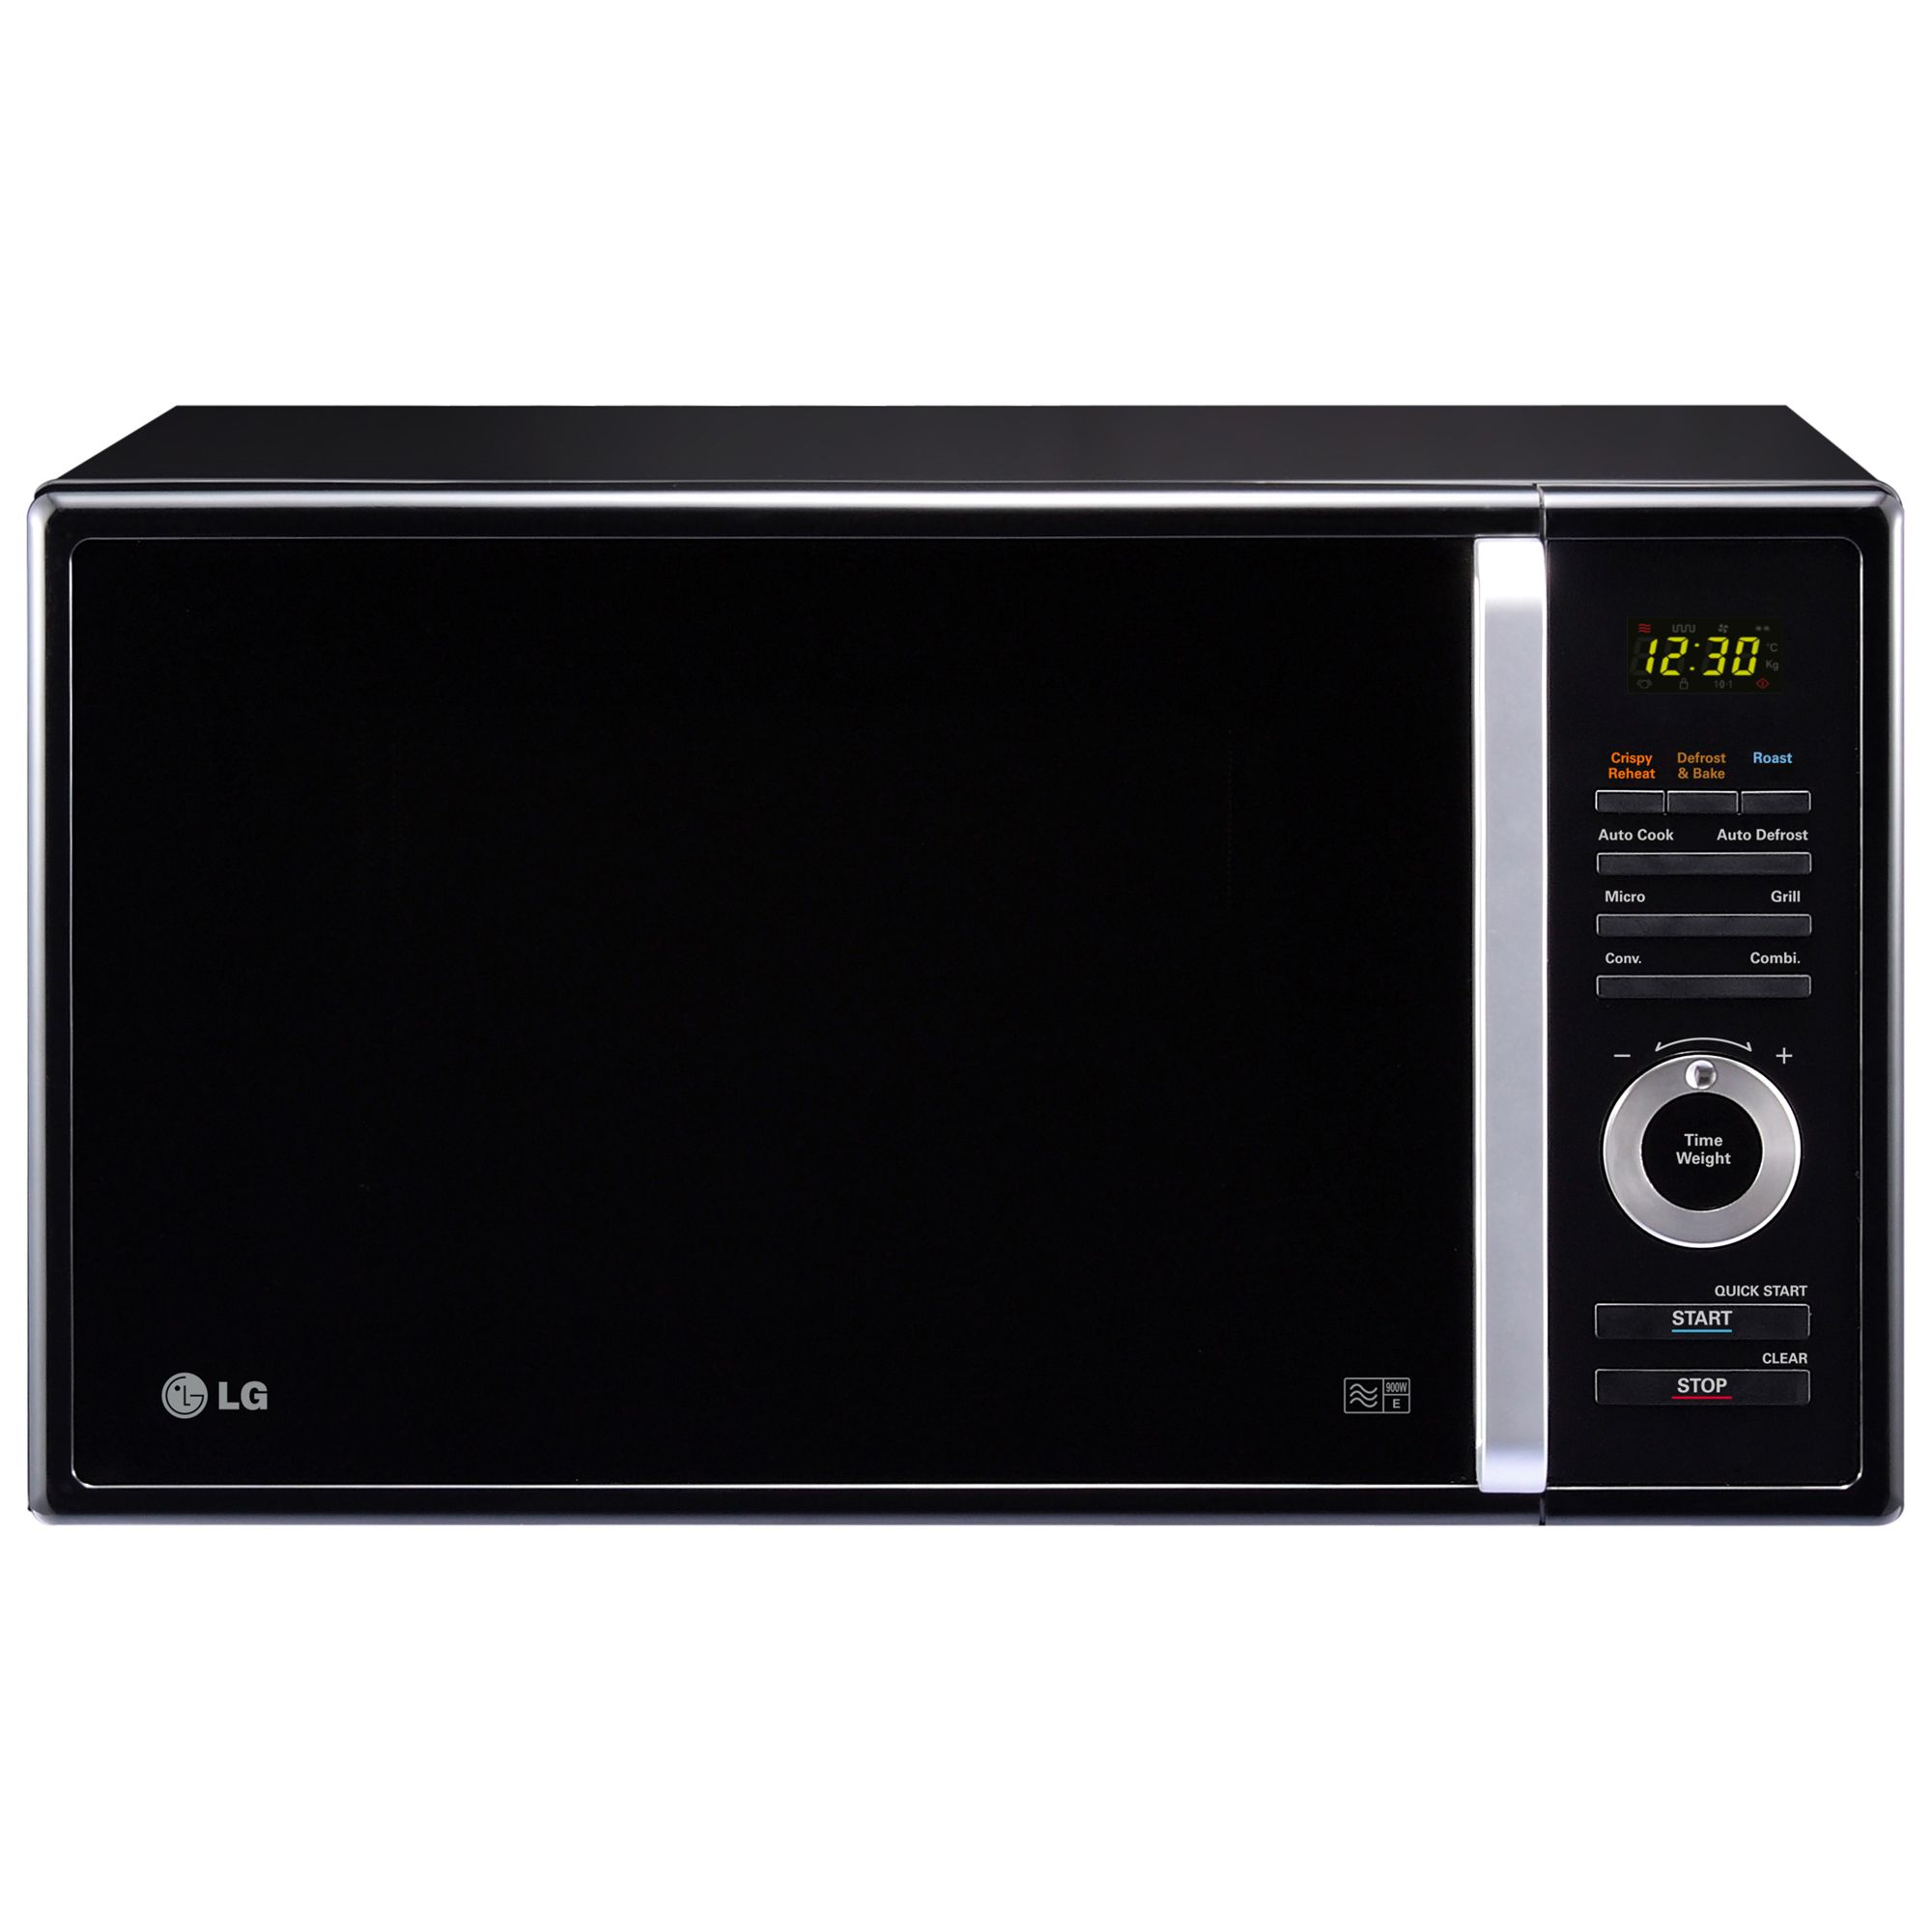 Hilarious Microwave In Plus Microwave As Wells As Electric